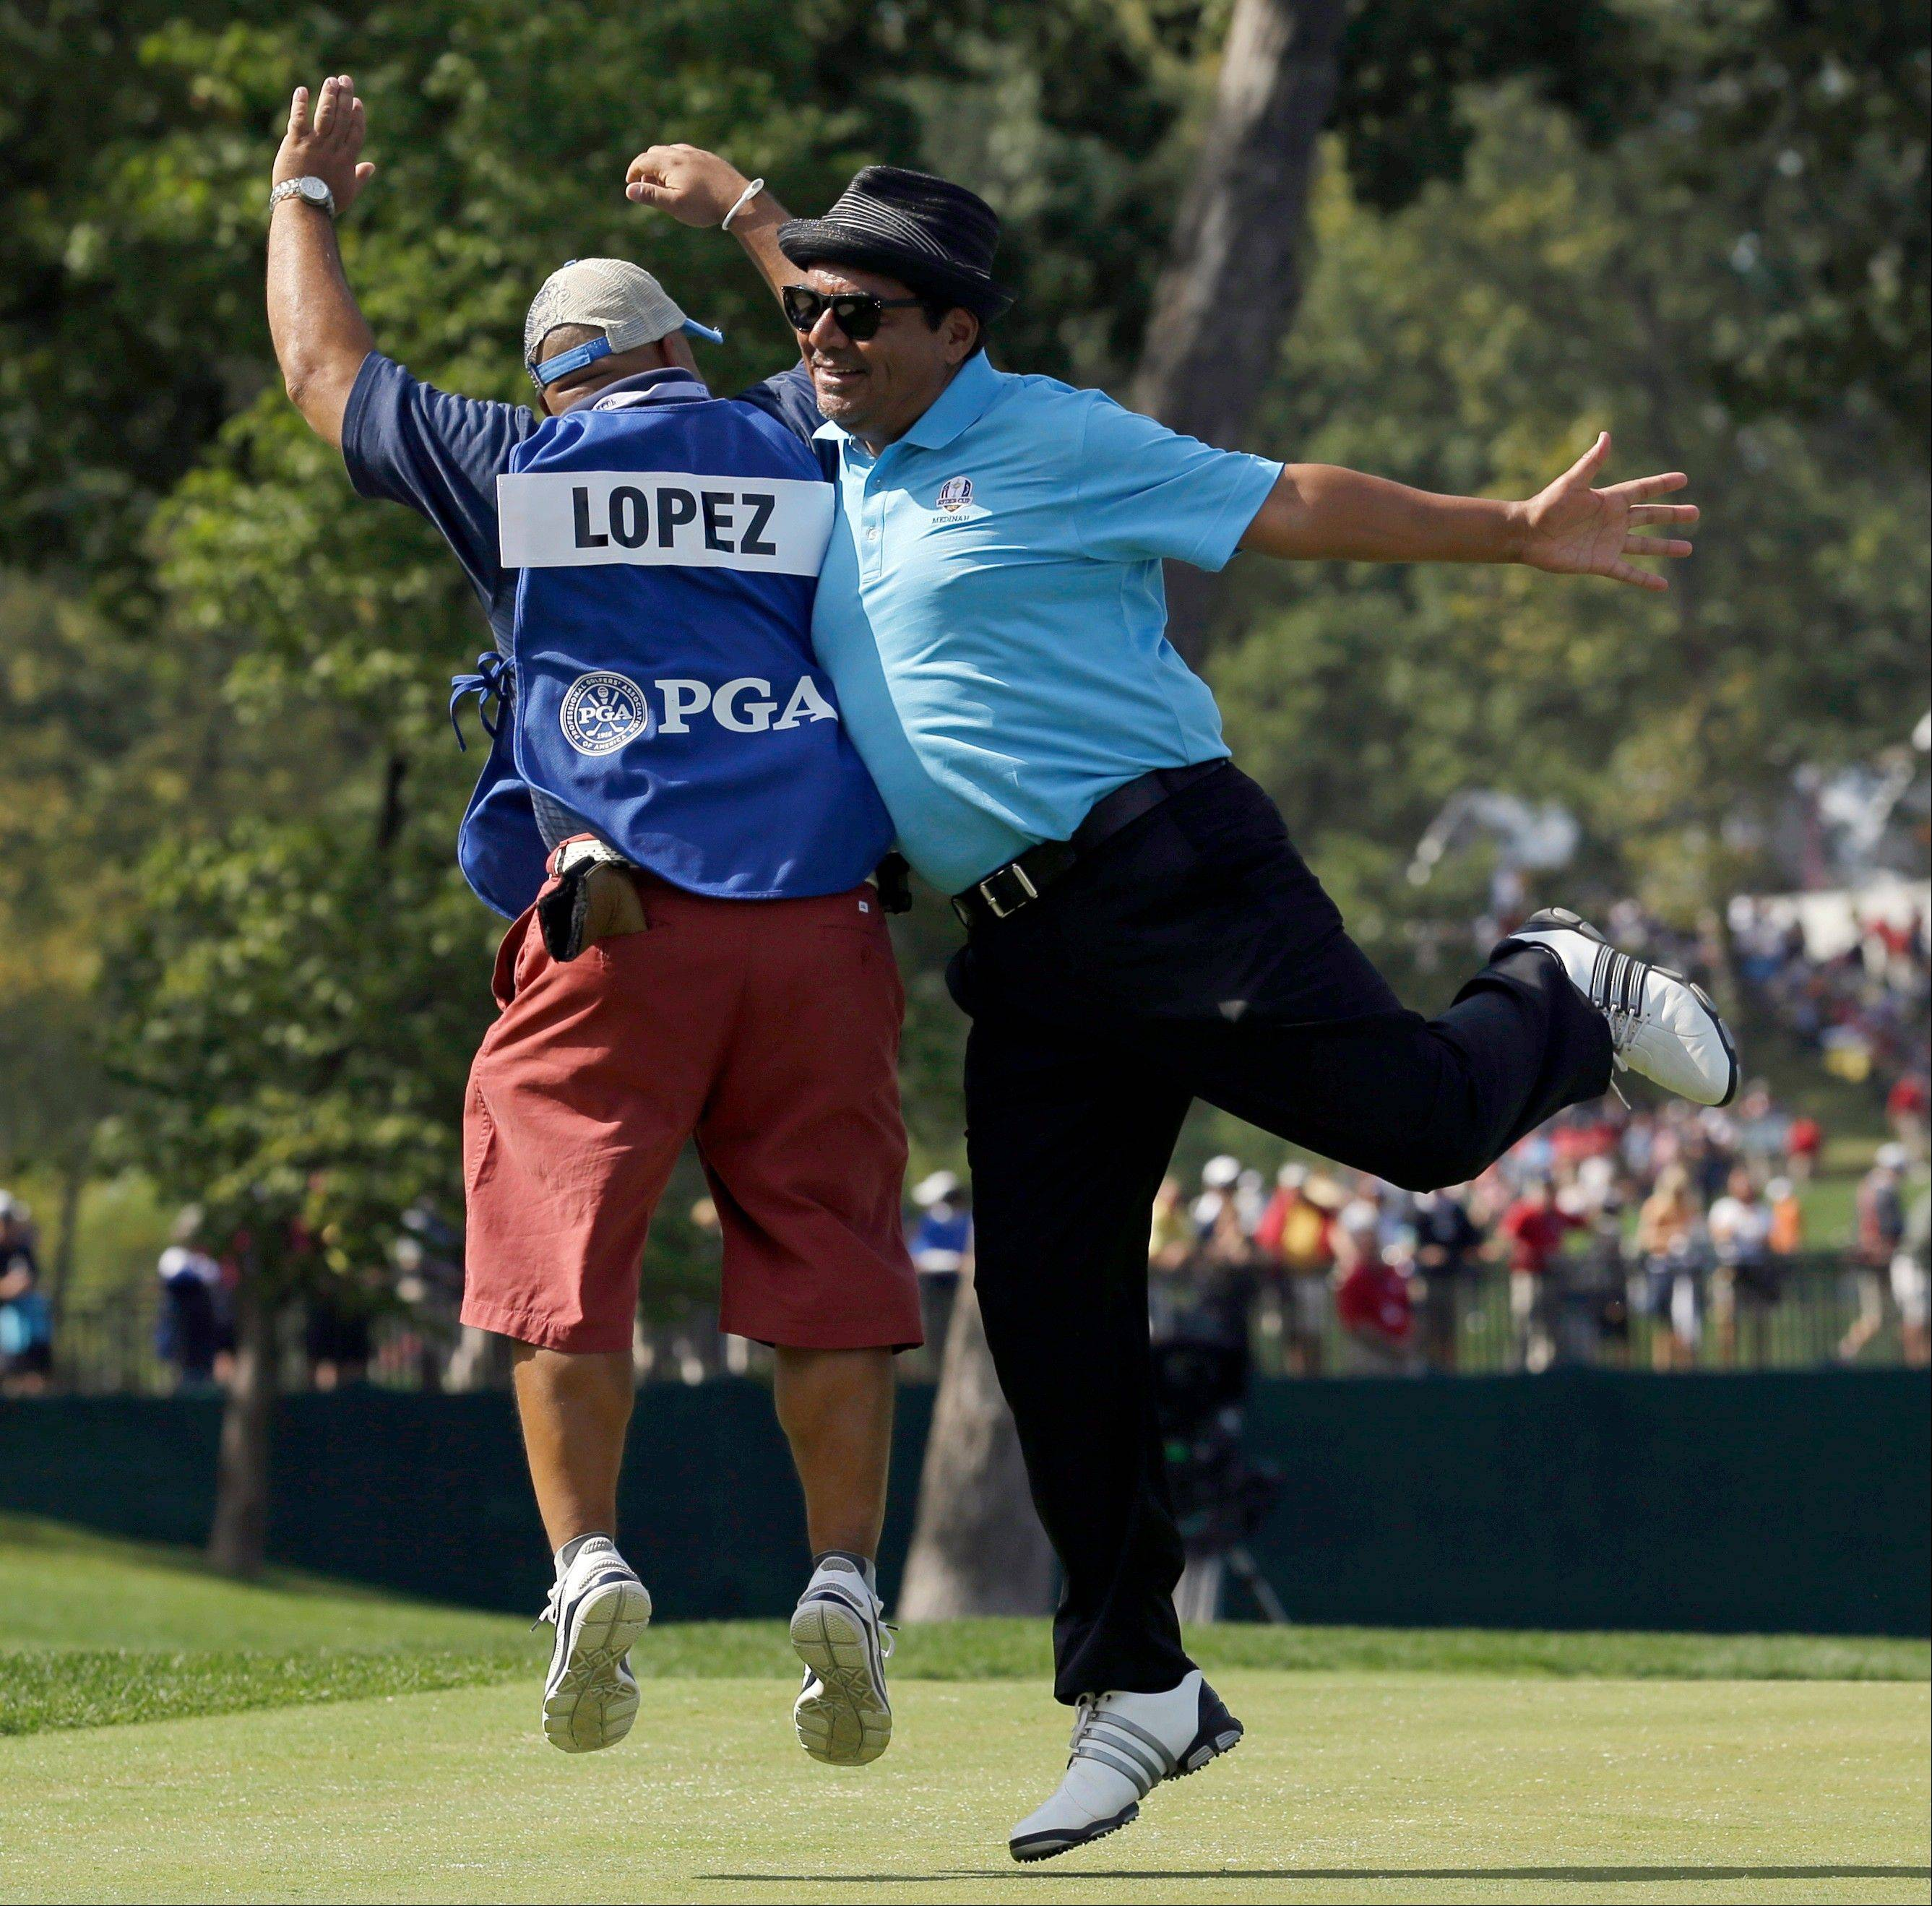 Comedian George Lopez, right, celebrates with his caddie after making a putt on the second hole.